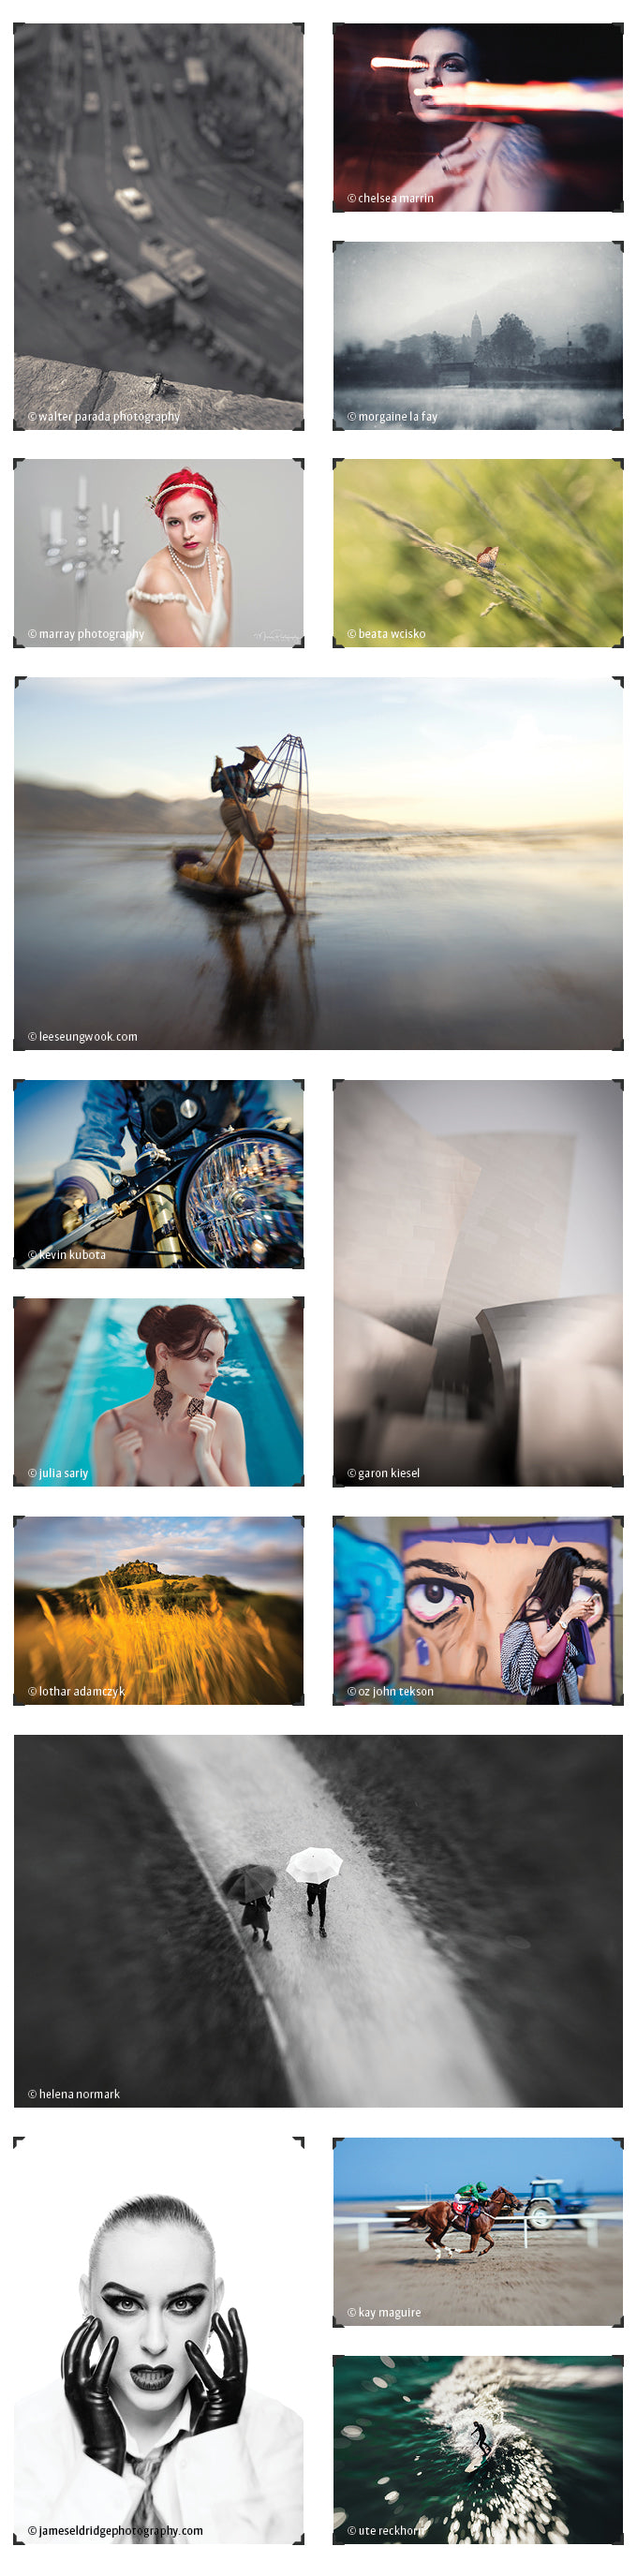 Lensbaby top sweet 50 photos image collage 15 favorite photos